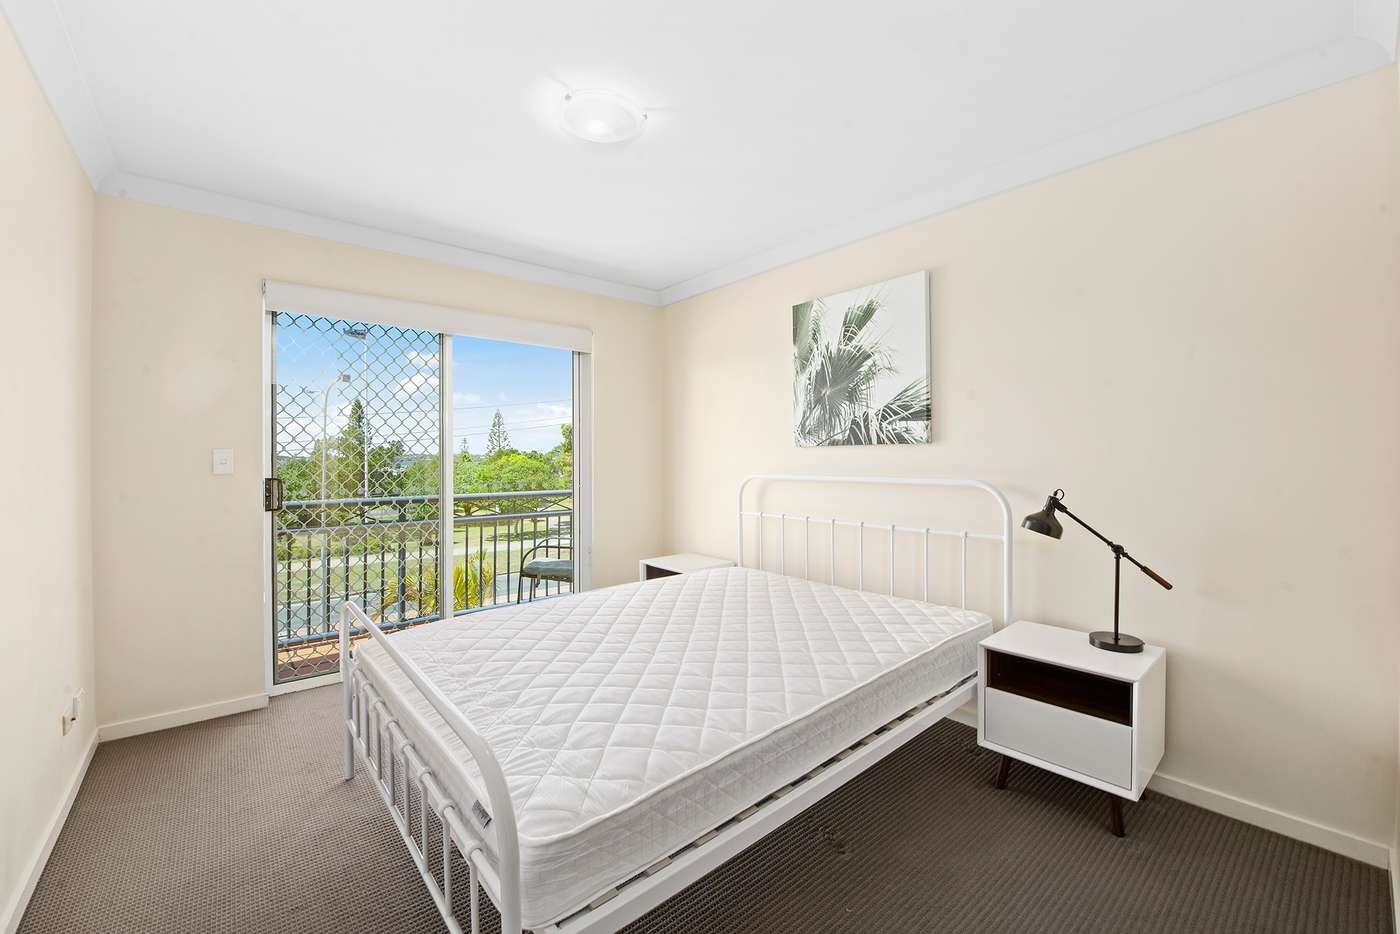 Sixth view of Homely apartment listing, 68/148-150 Marine Parade, Southport QLD 4215